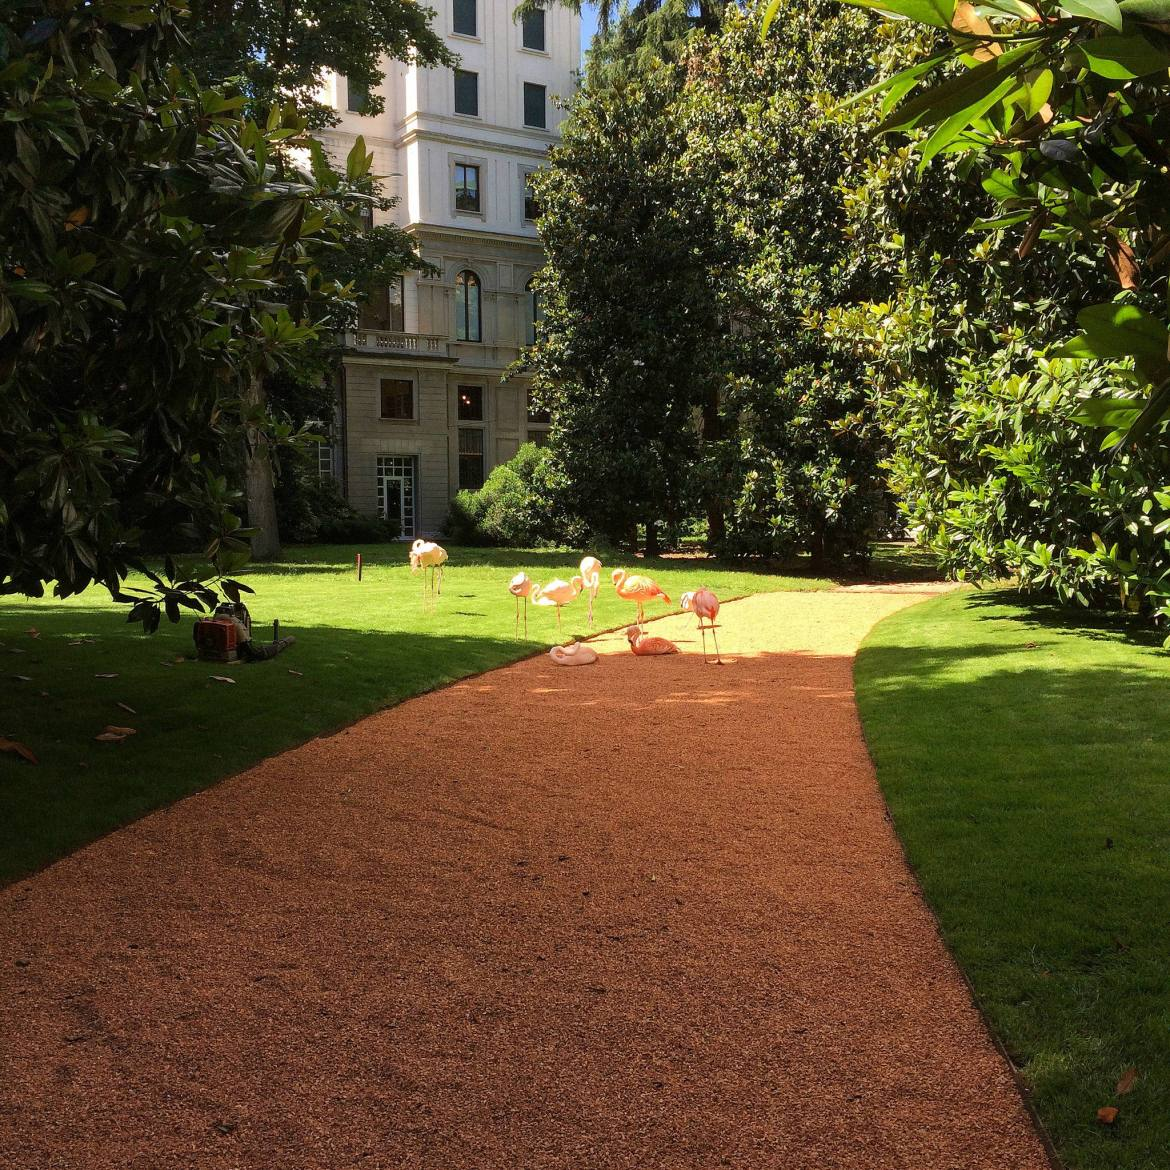 flamingos in a garden in Milano